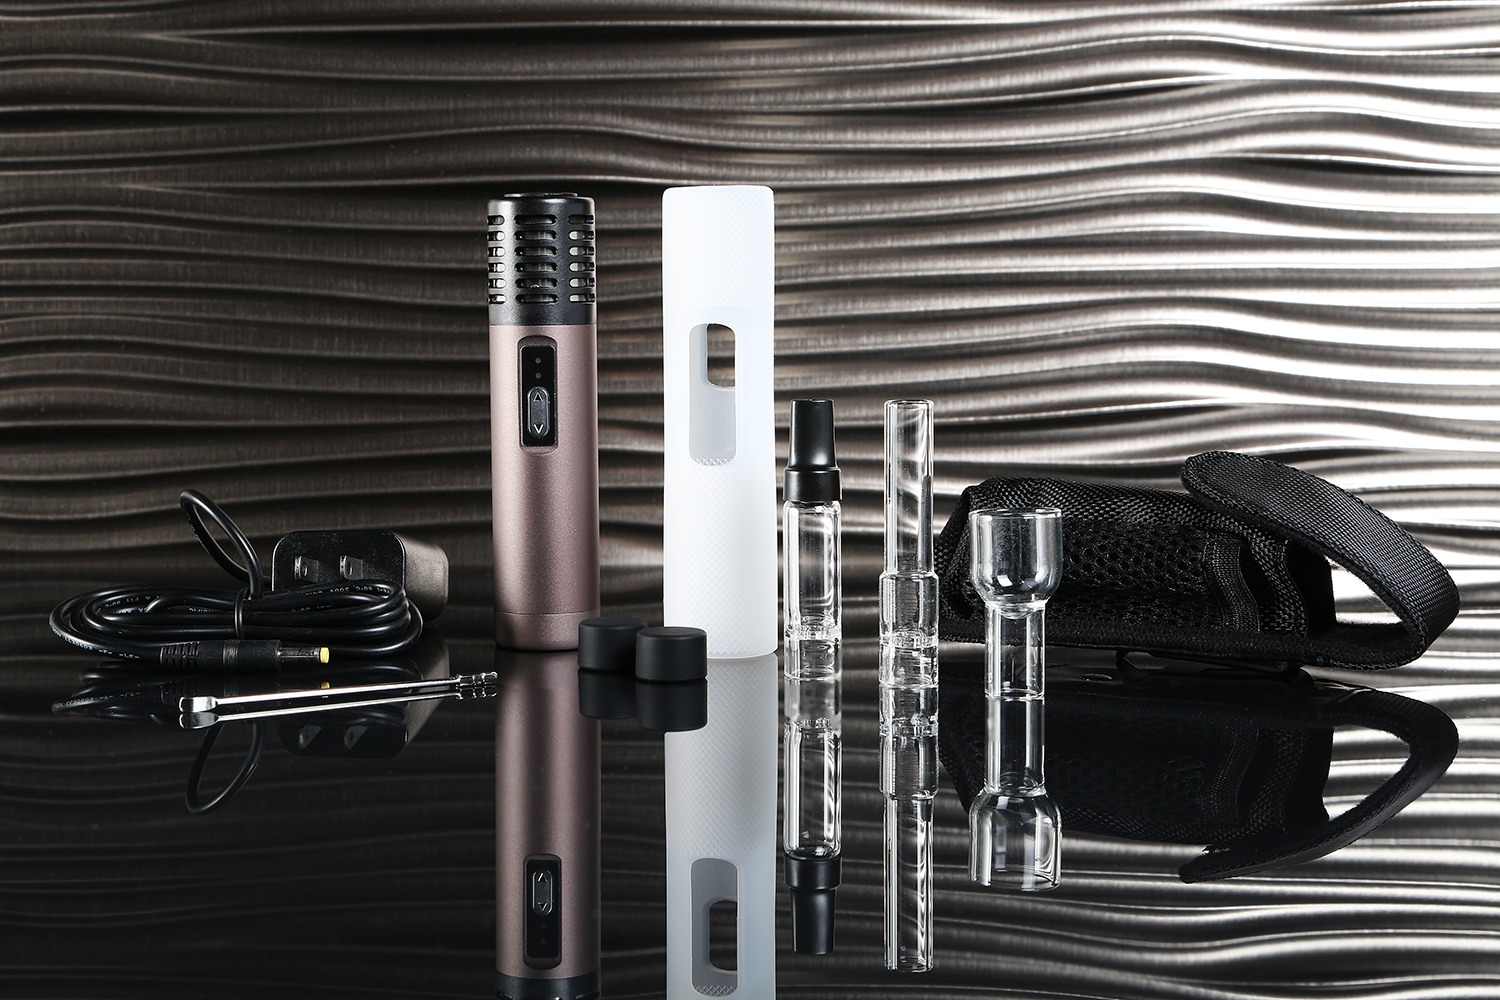 arizer air vaporizer